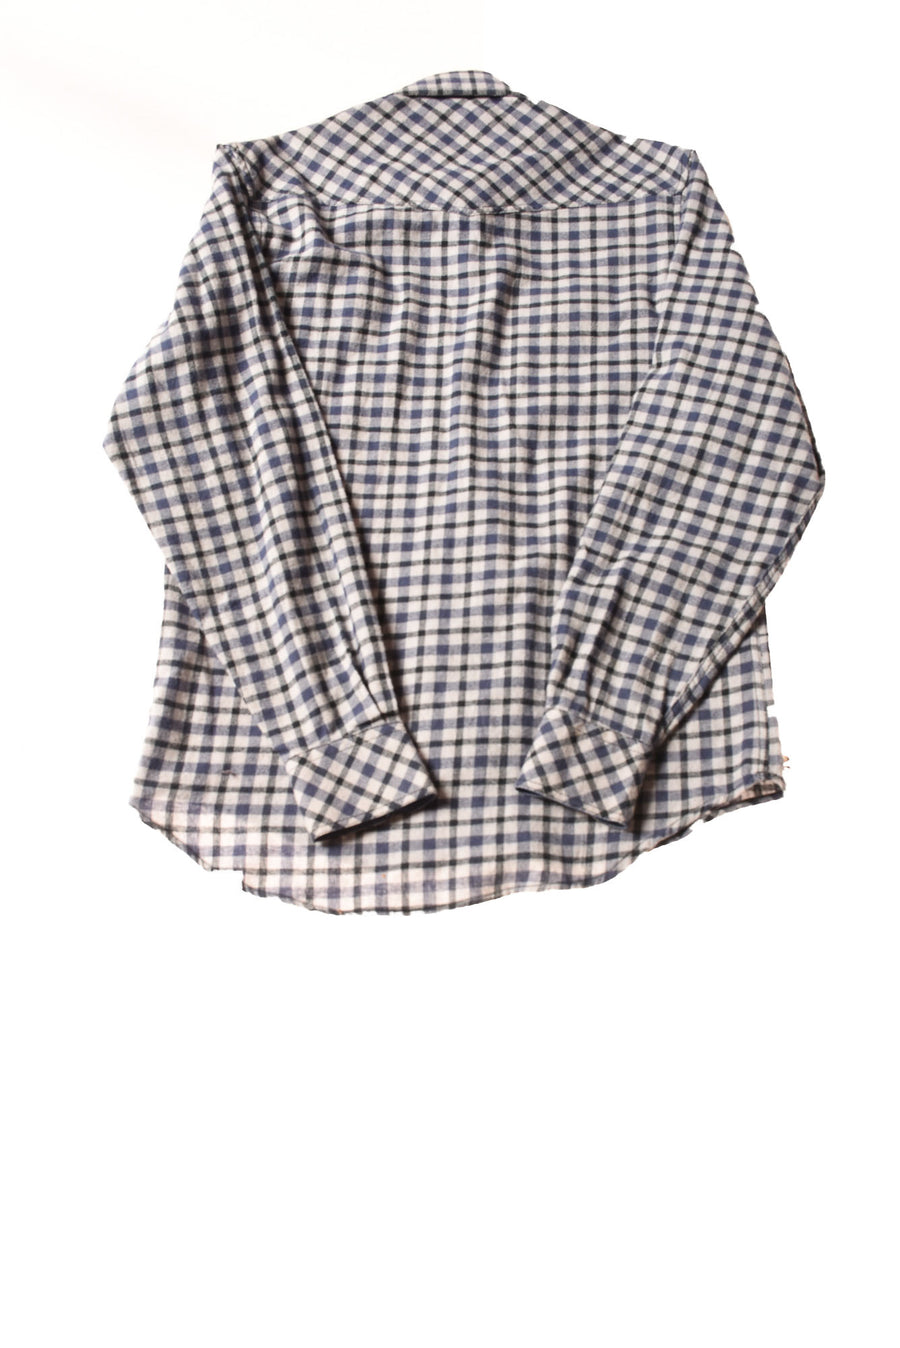 USED Duke's Bark Men's Shirt Small Blue/Plaid